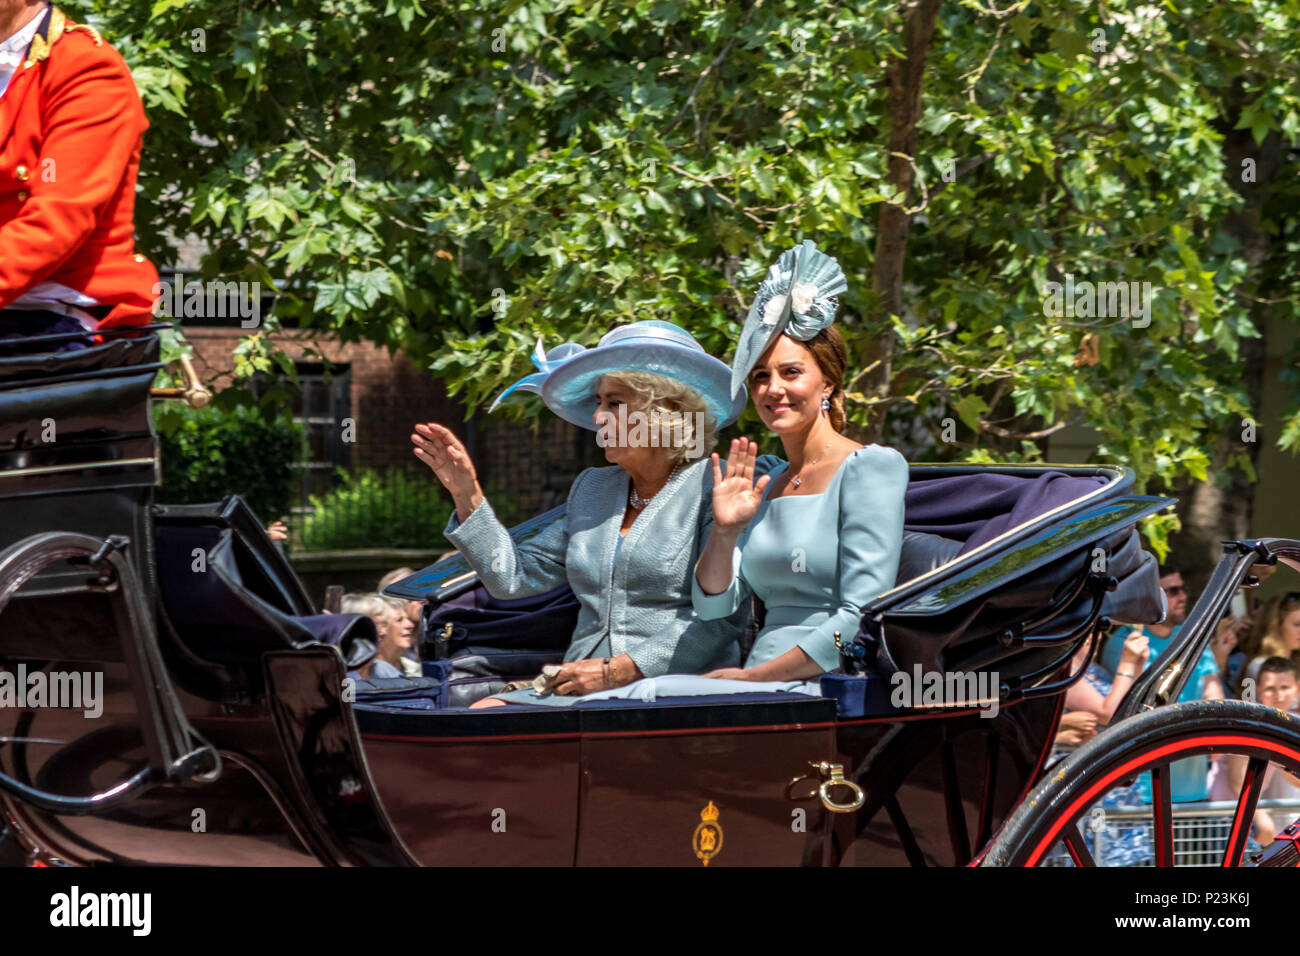 Duchess Of Cambridge,Kate Middleton & Duchess Of Cornwall,Camilla,ride together in a carriage, wave to the crowds at The Trooping Of The Colour 2018 Stock Photo